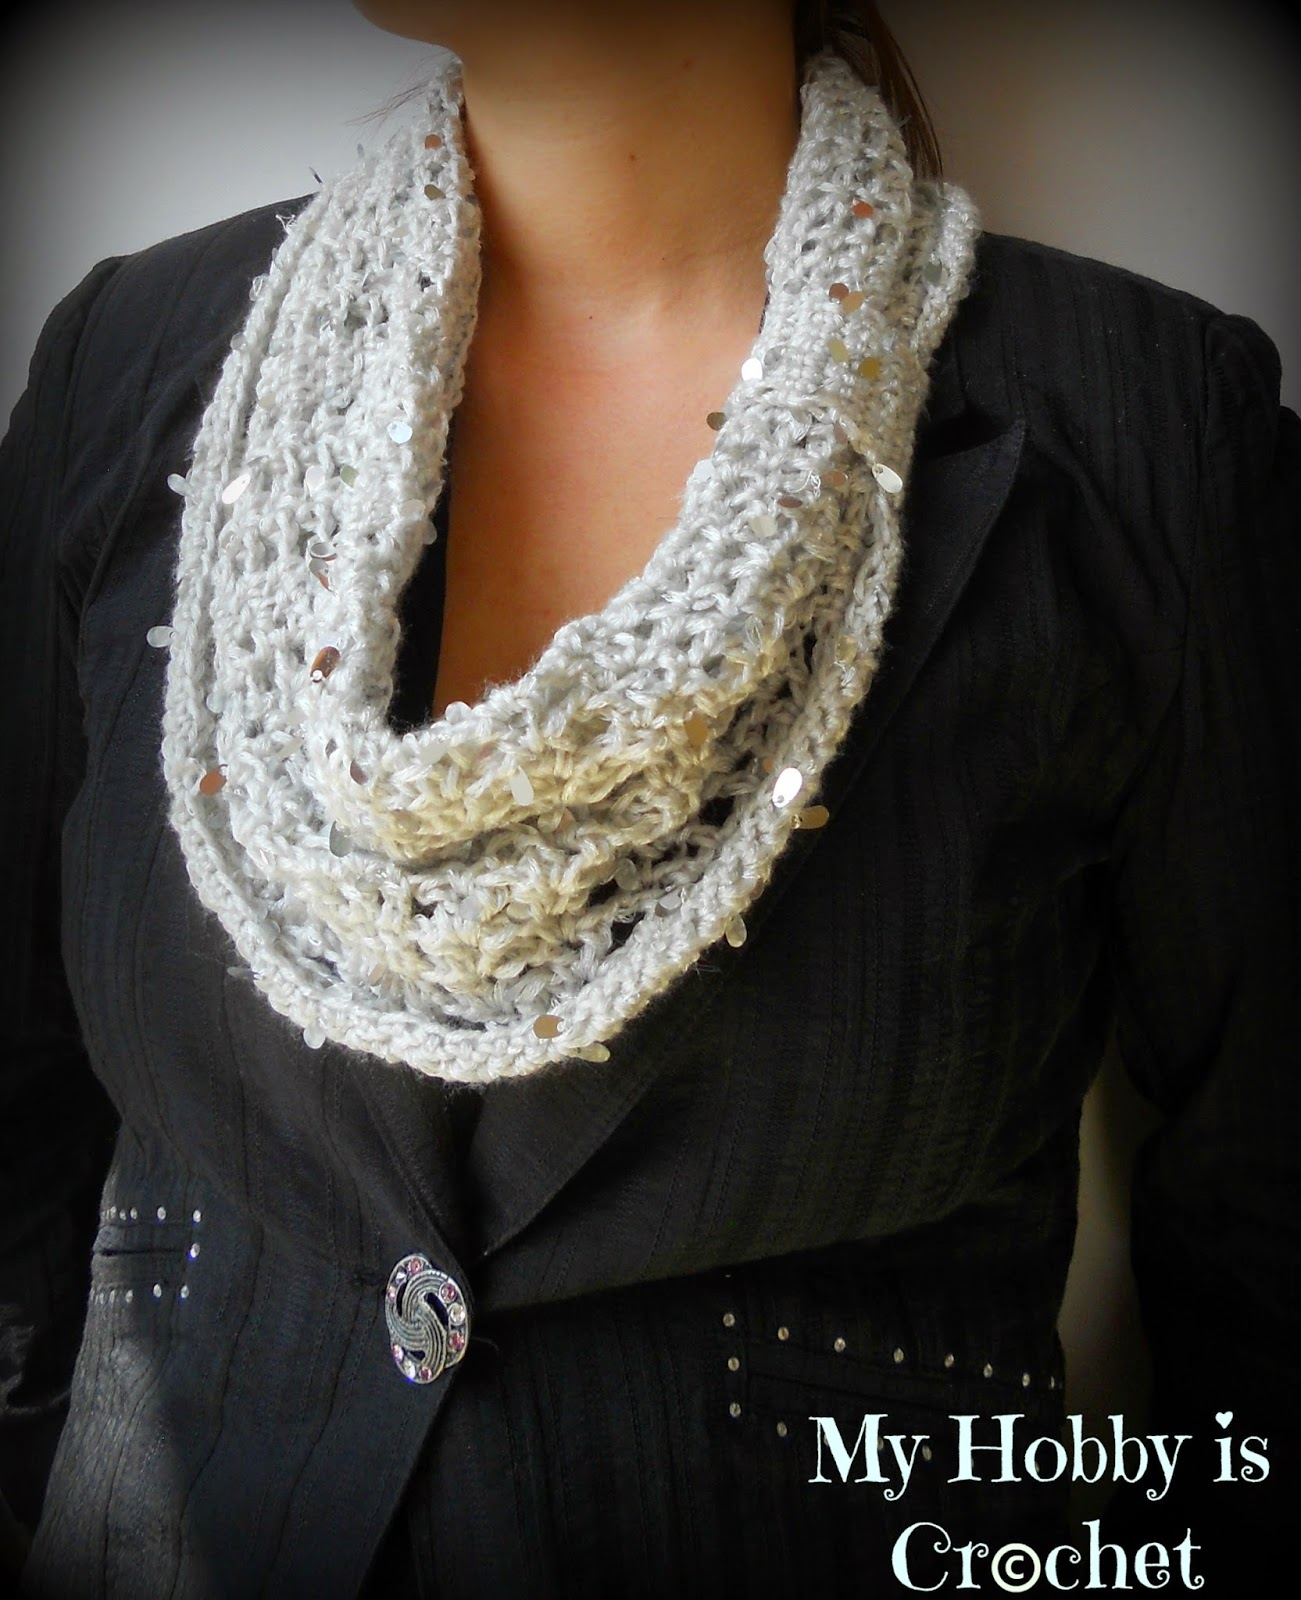 Free Cowl Pattern To Crochet : My Hobby Is Crochet: Swanky Glam Cowl - Free Crochet ...